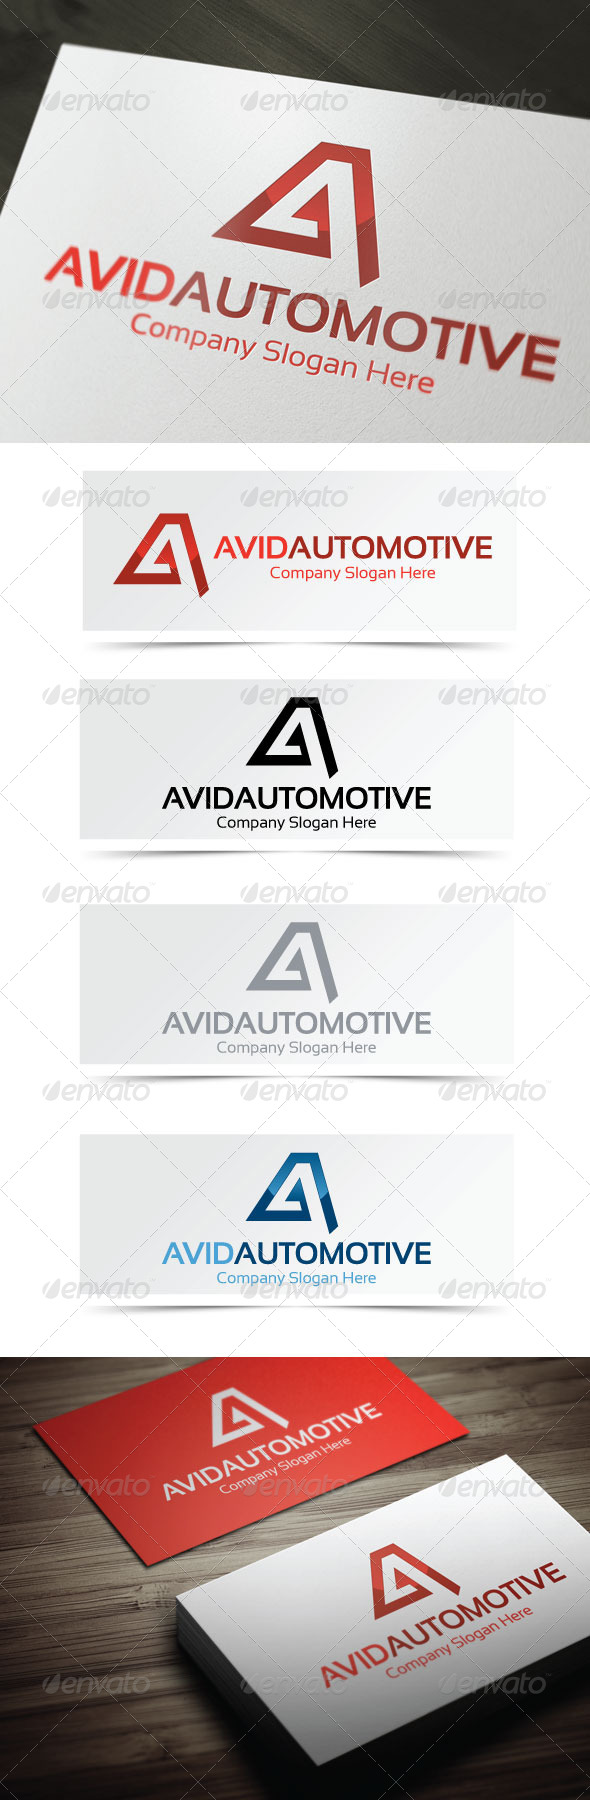 GraphicRiver Avid Automotive 4106062